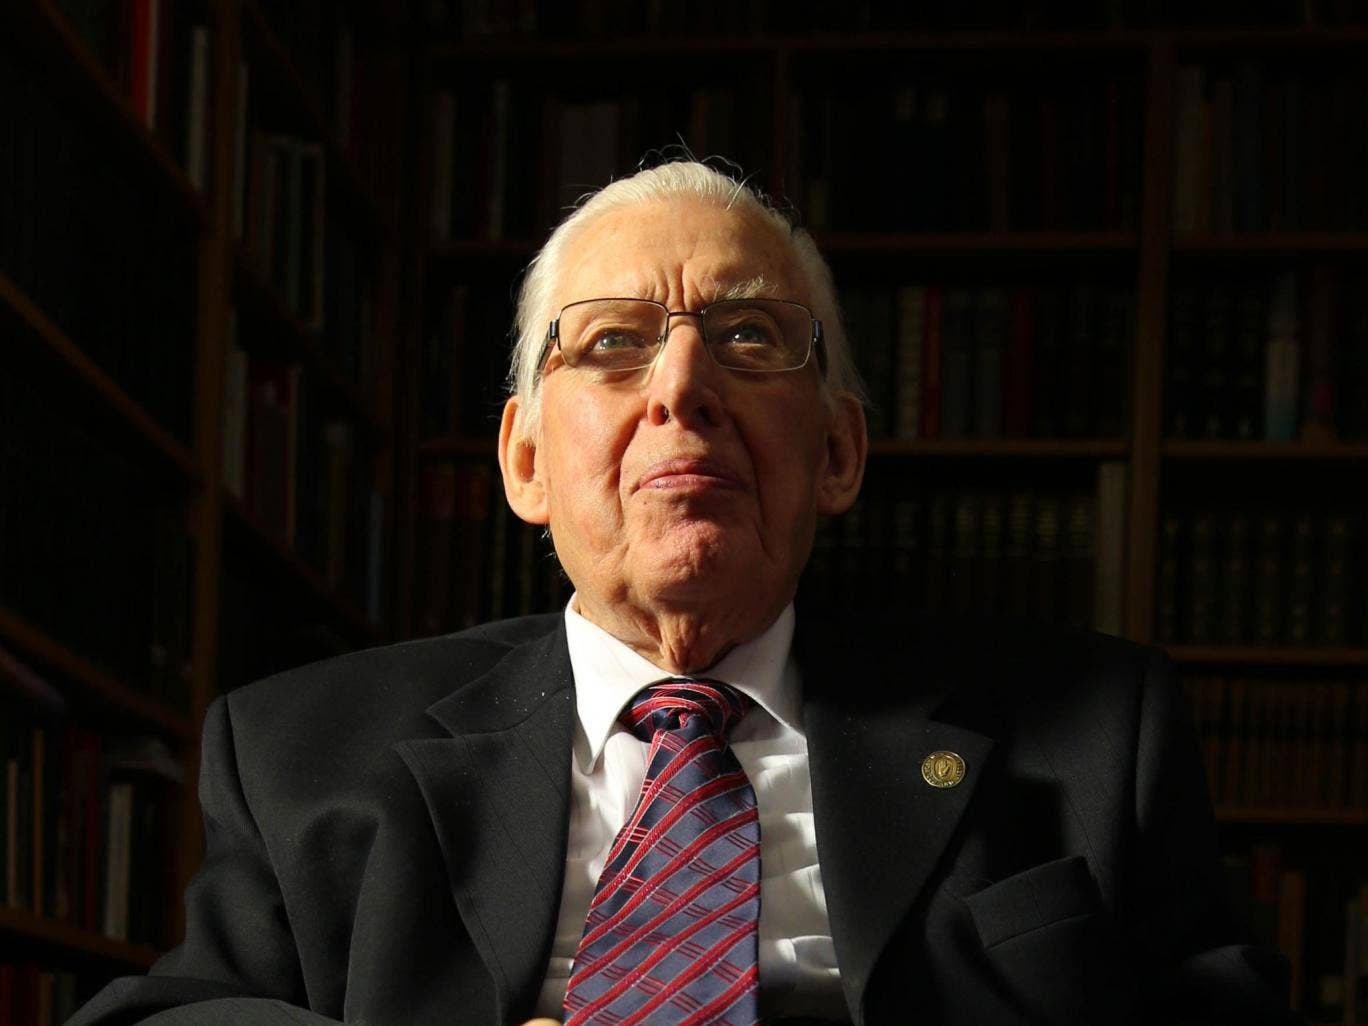 Ian Paisley stepped down as Northern Ireland's First Minister in 2008